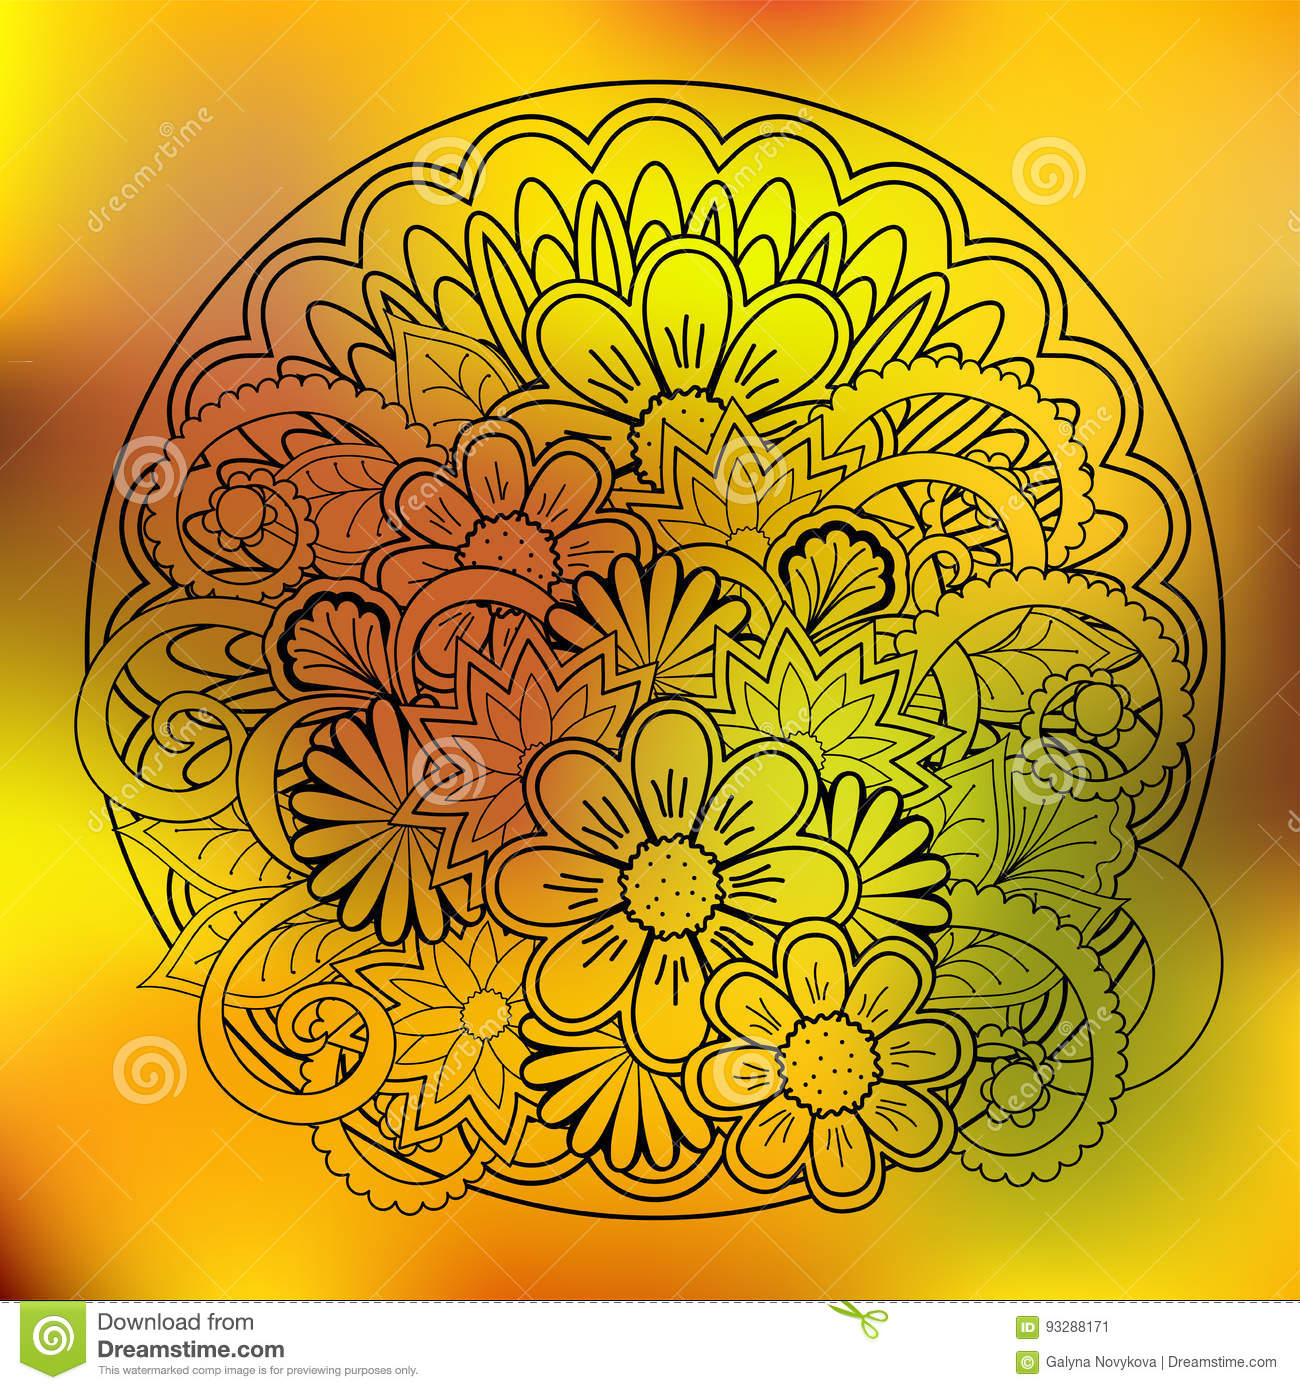 Transparent Floral Summer Composition With Mandala Yellow Gradie ...